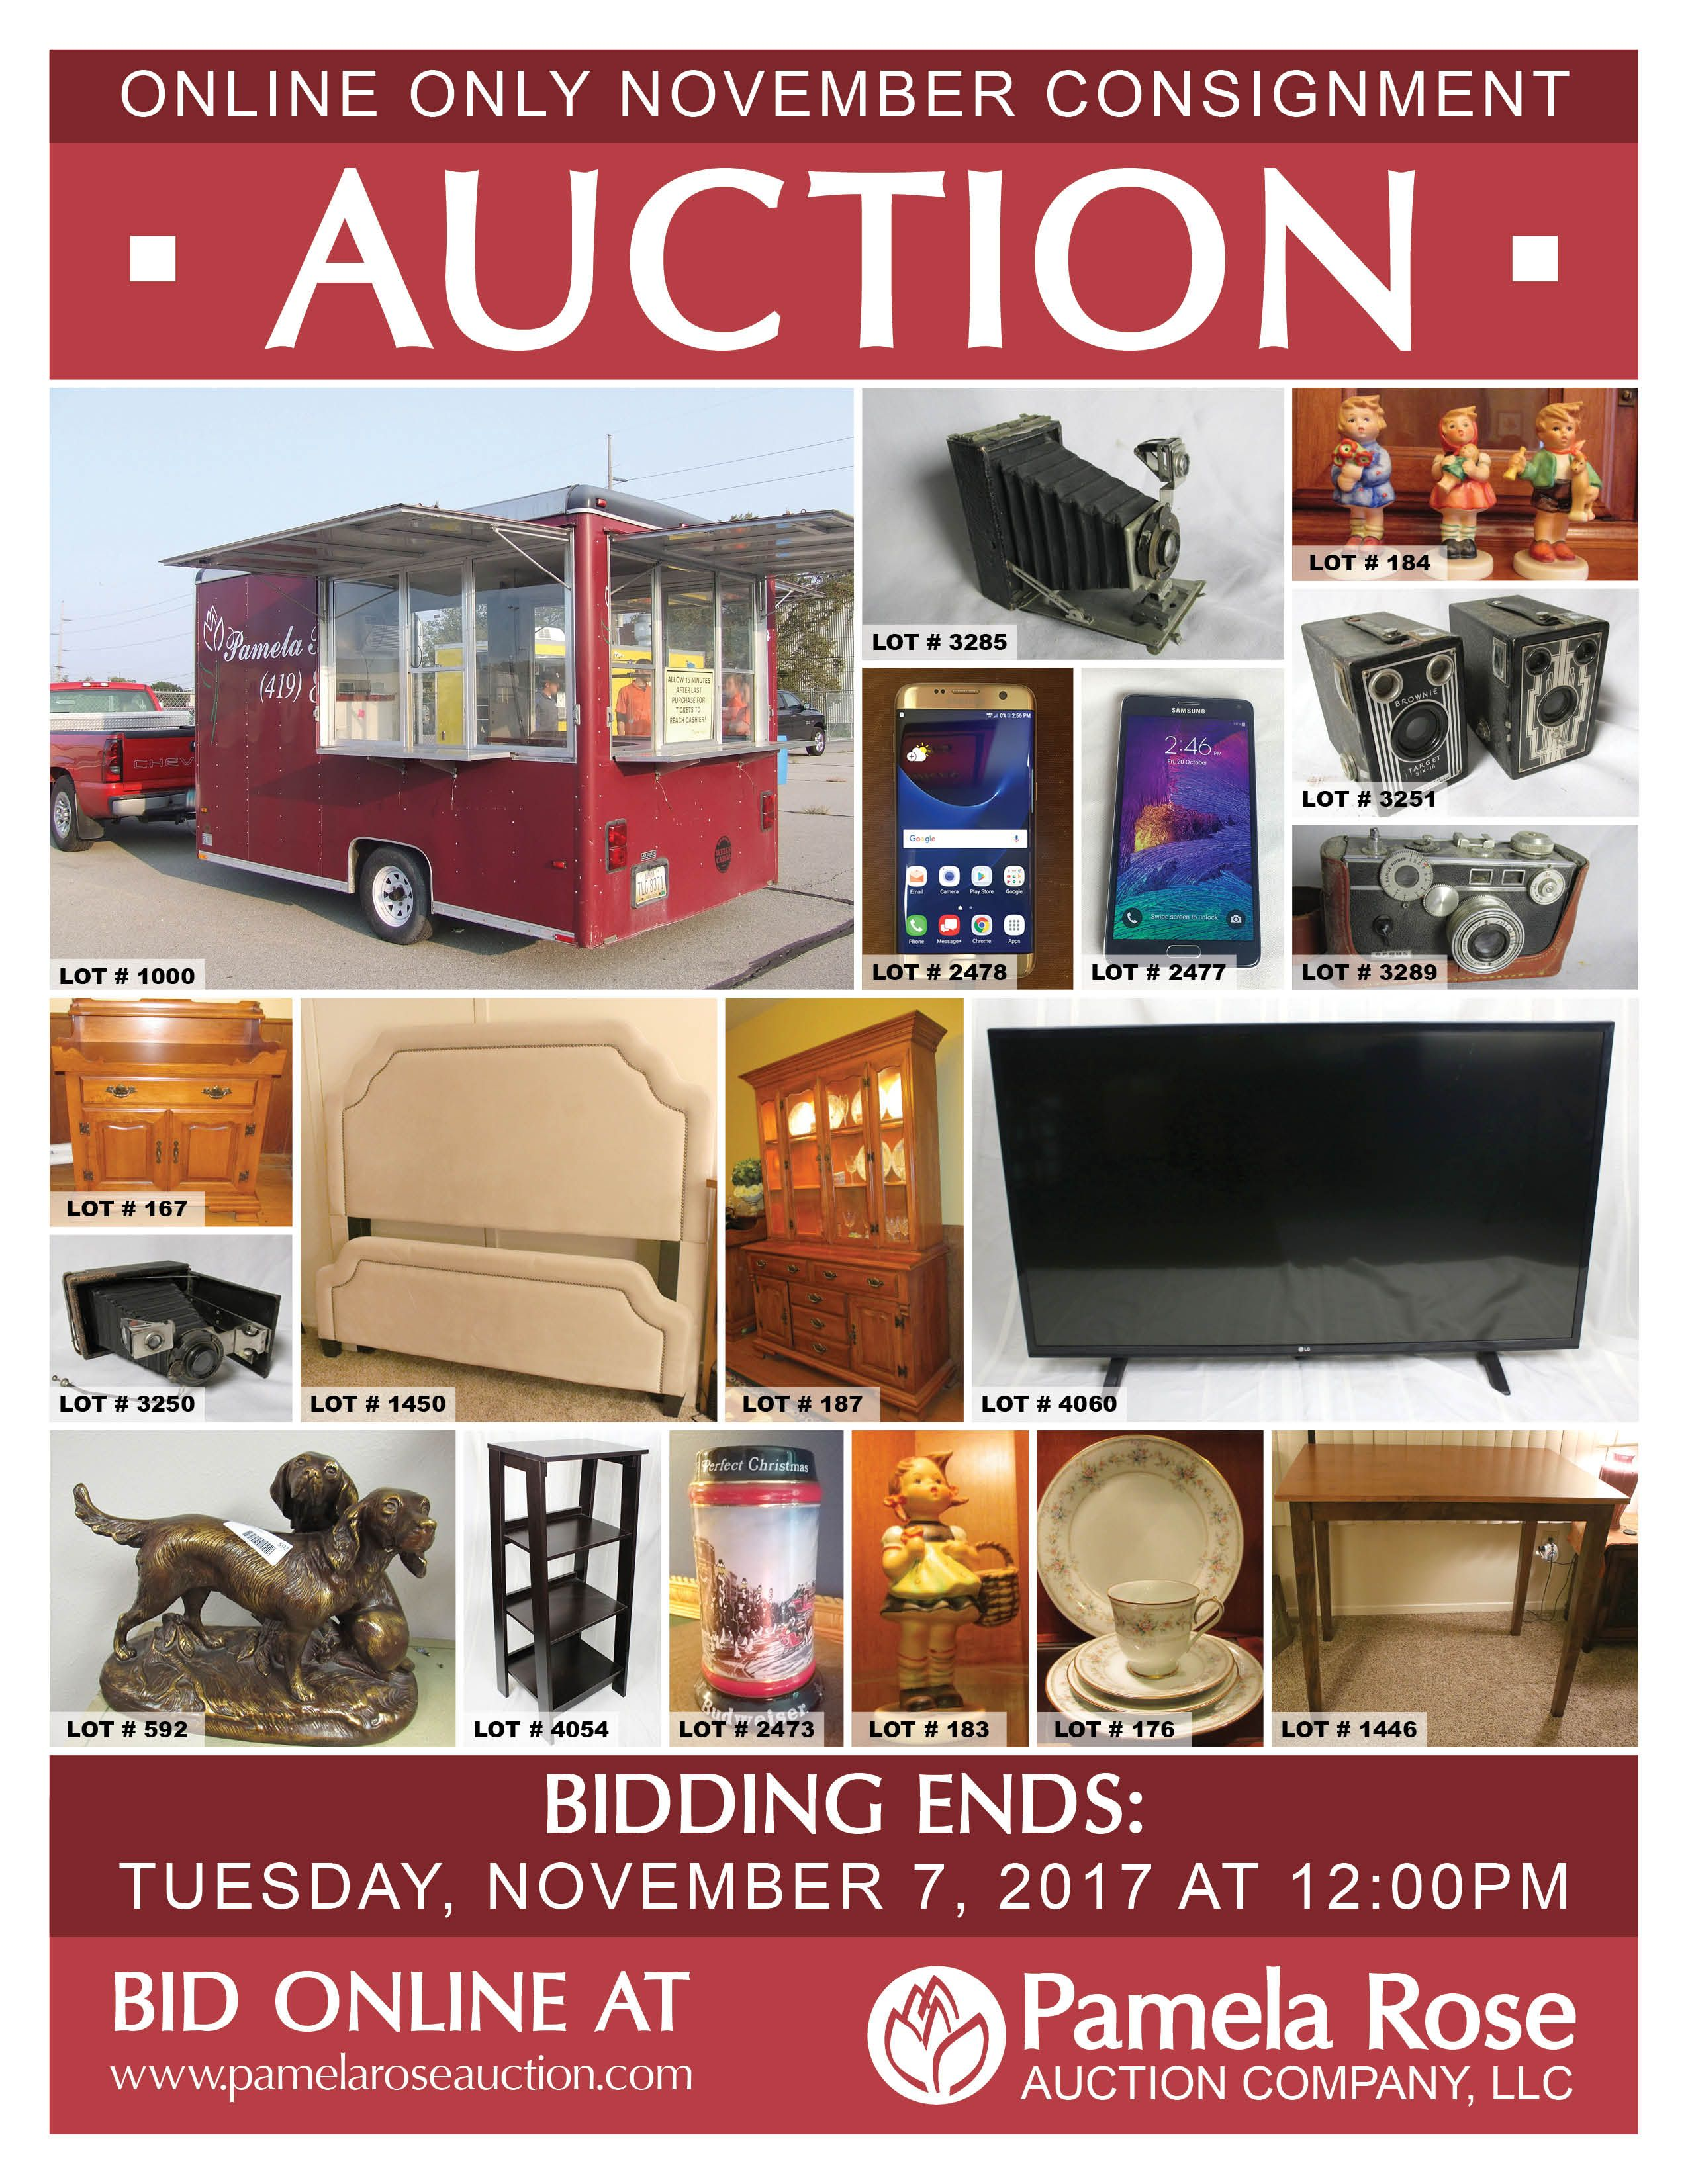 Online Only November Consignment Auction Hundreds Of Items Bidding Is Now Open Bid Online At Www Pamelaroseauction Com Be With Images Auction Consignment Catalog Online